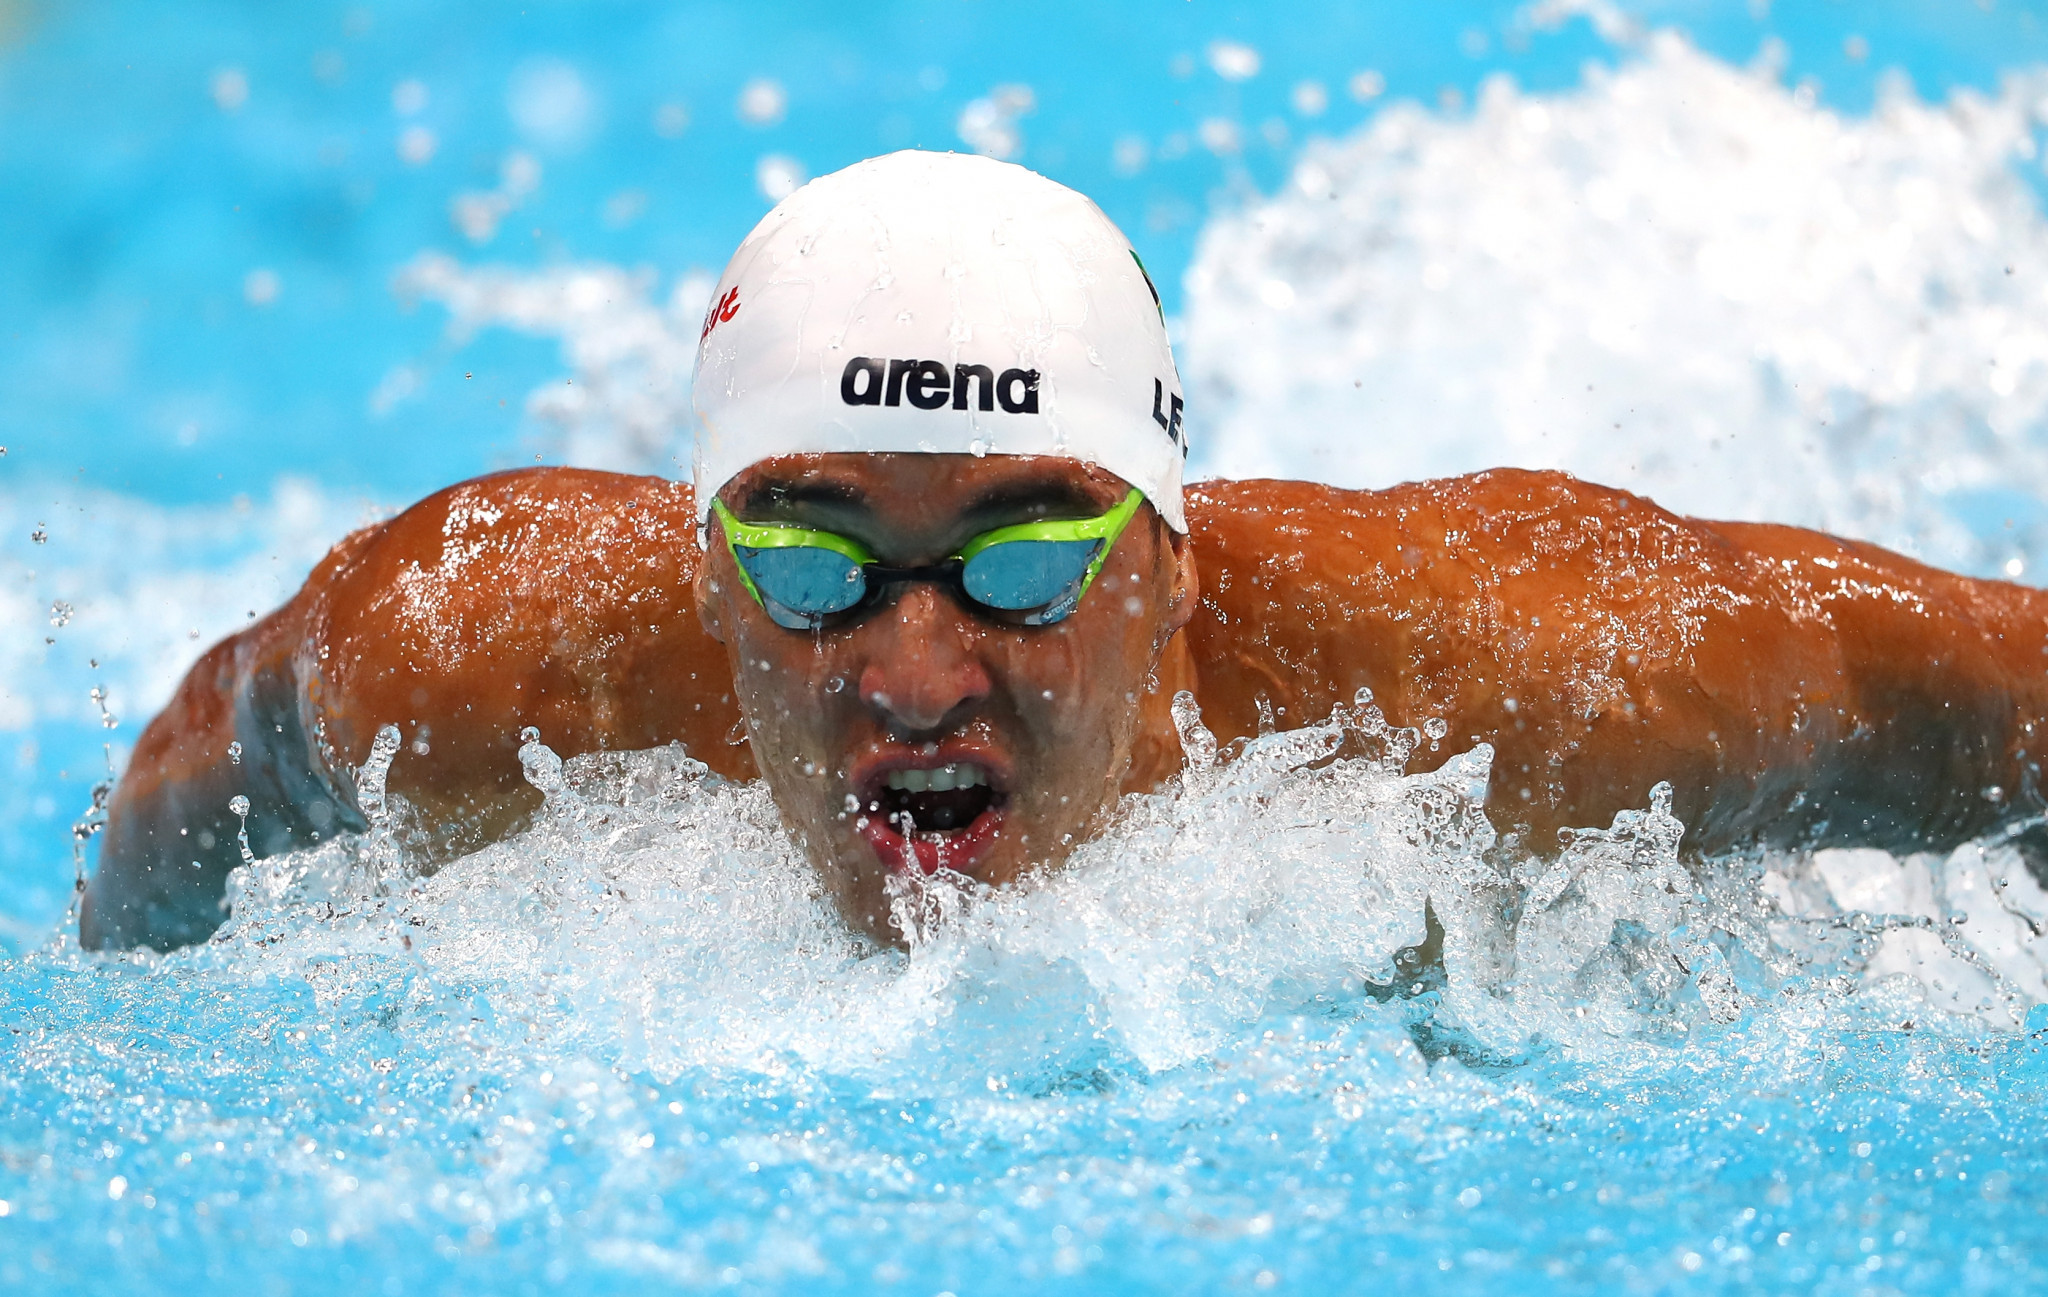 south Africa's current overall men's leader Chad Le Clos, a four-time Olympic medallist, matched the performance from Sweden's Sarah Sjöström with two wins ©Getty Images